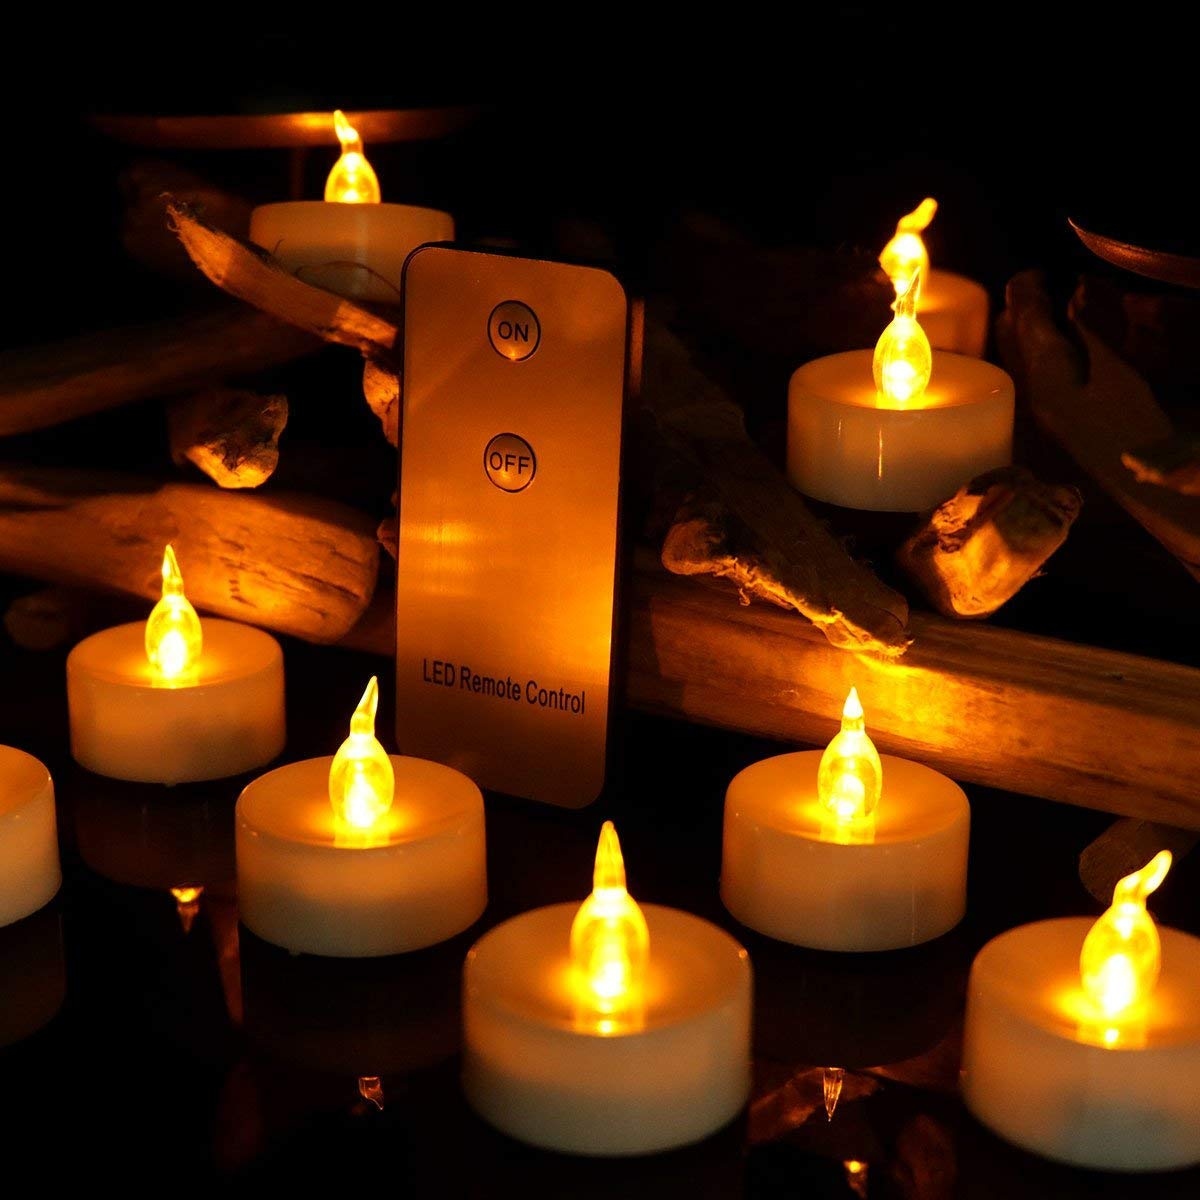 Micandle 12 Pack Remote Candles,Led Flameless Remote Tea Lights for Wedding Party Church Home Decorate,Last up to 48 Hours,Battery Amber Flickering Remote Tealights for Wedding Party by Micandle (Image #3)